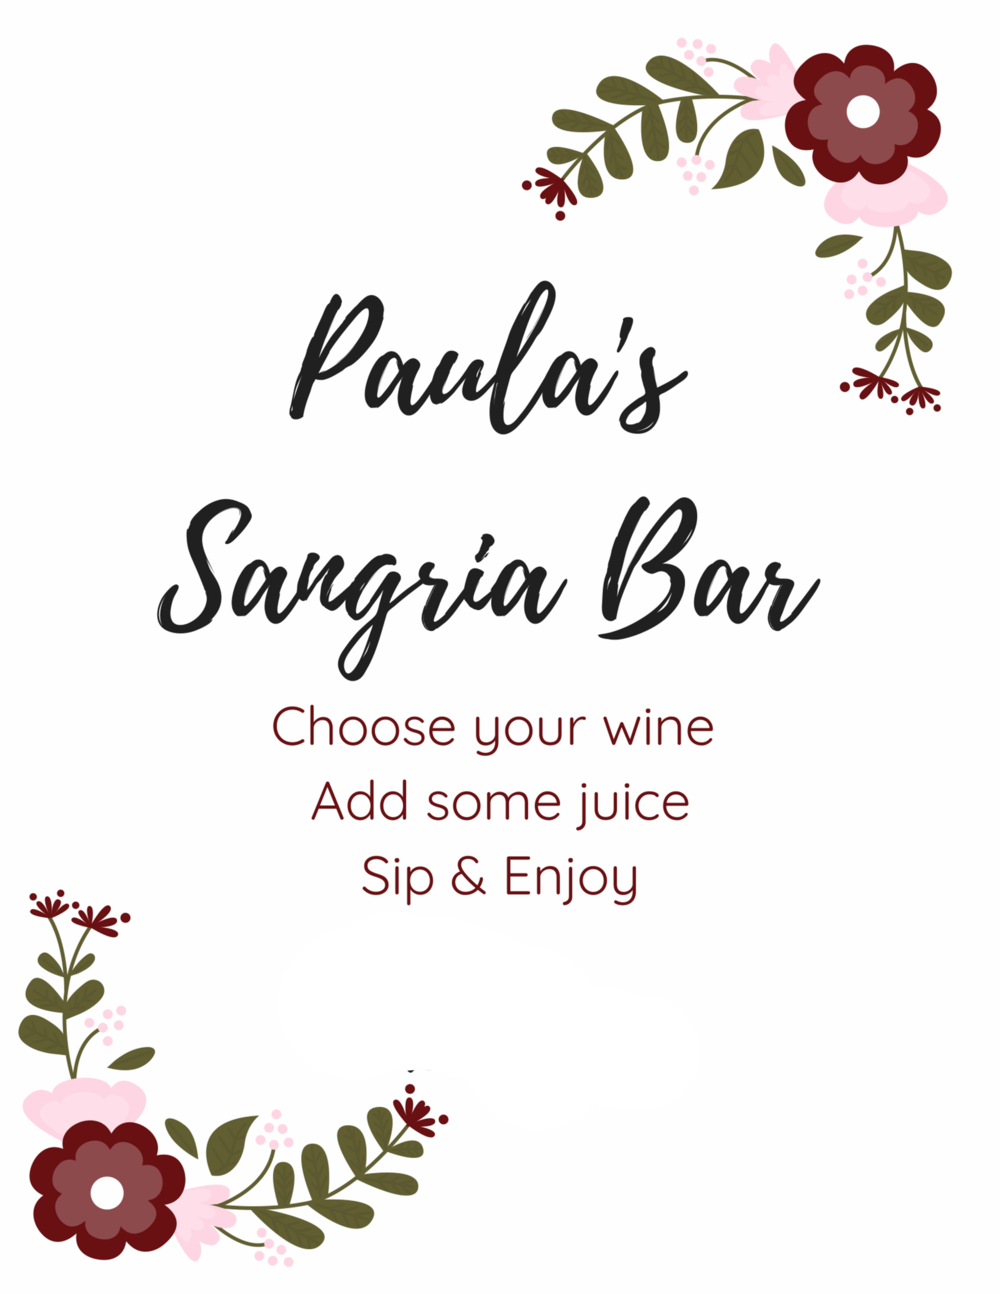 bachelorette party well with brielle wellwithbrielle.com sangria bar diy